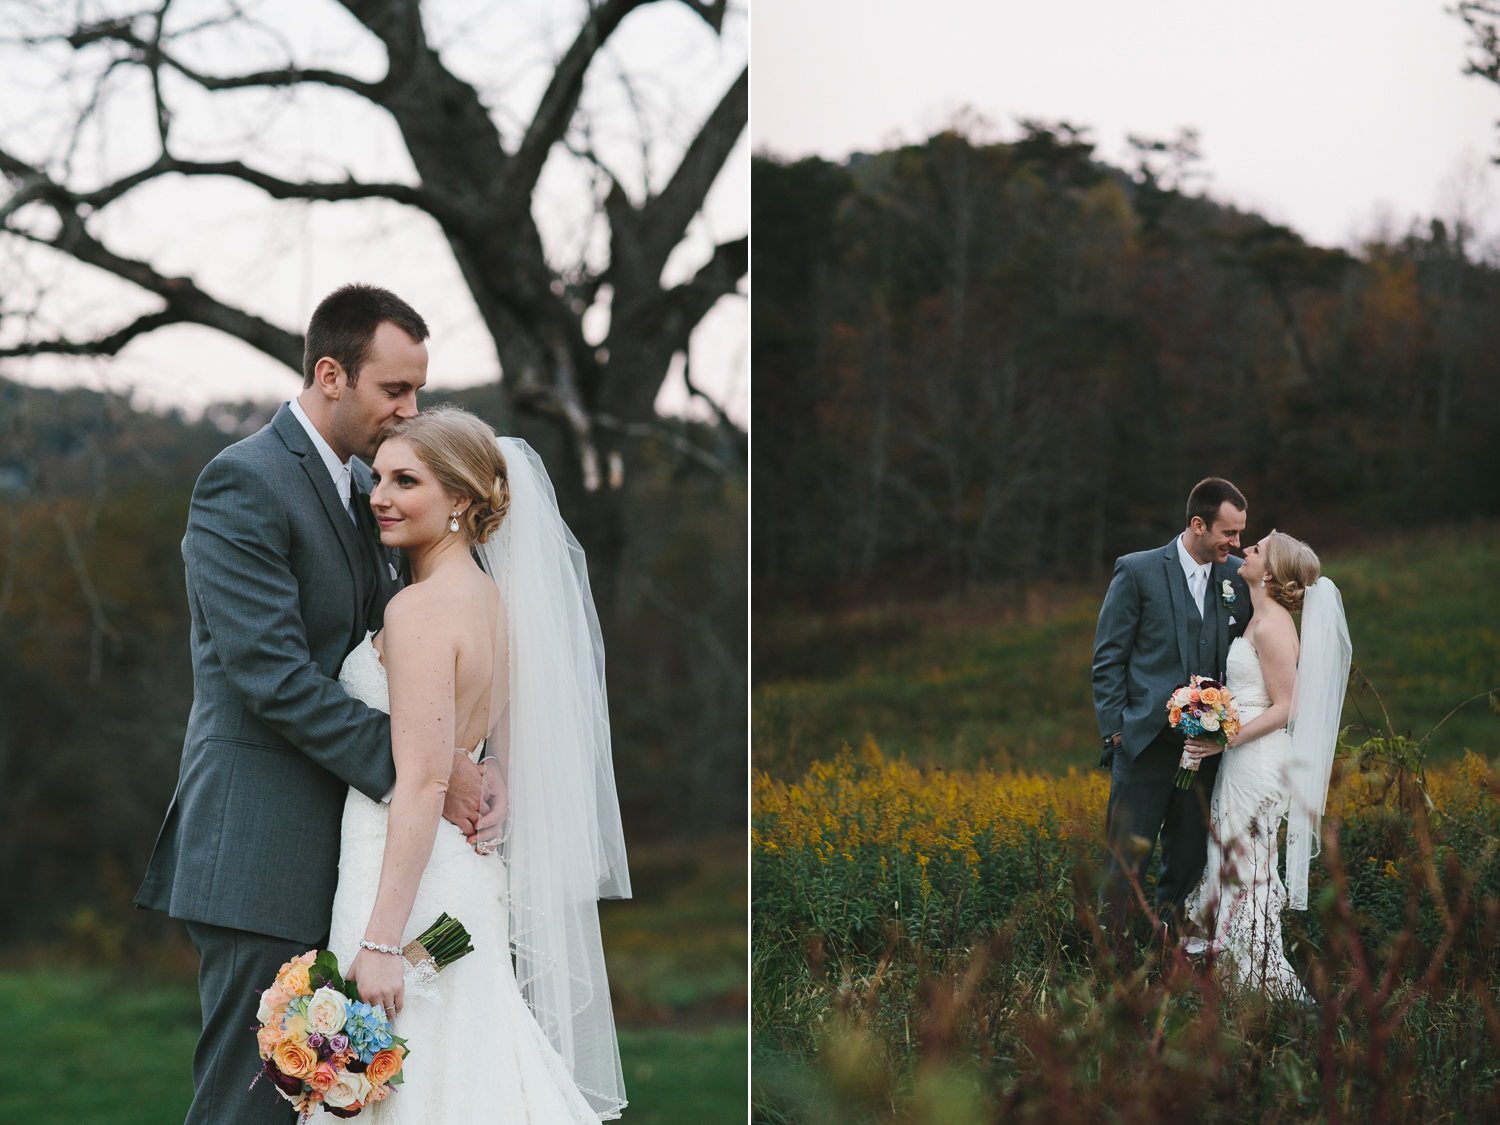 Beautiful outdoor portraits of bride and groom